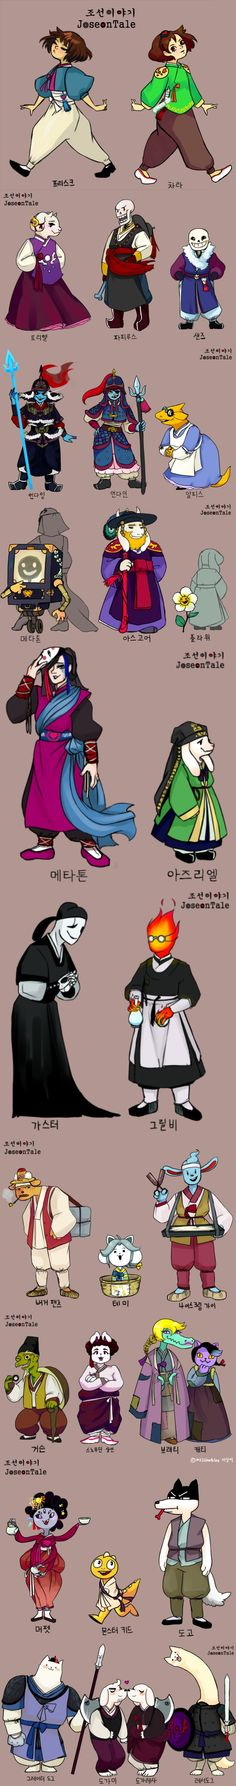 Undertale - JoseonTale AU dad needs to see this